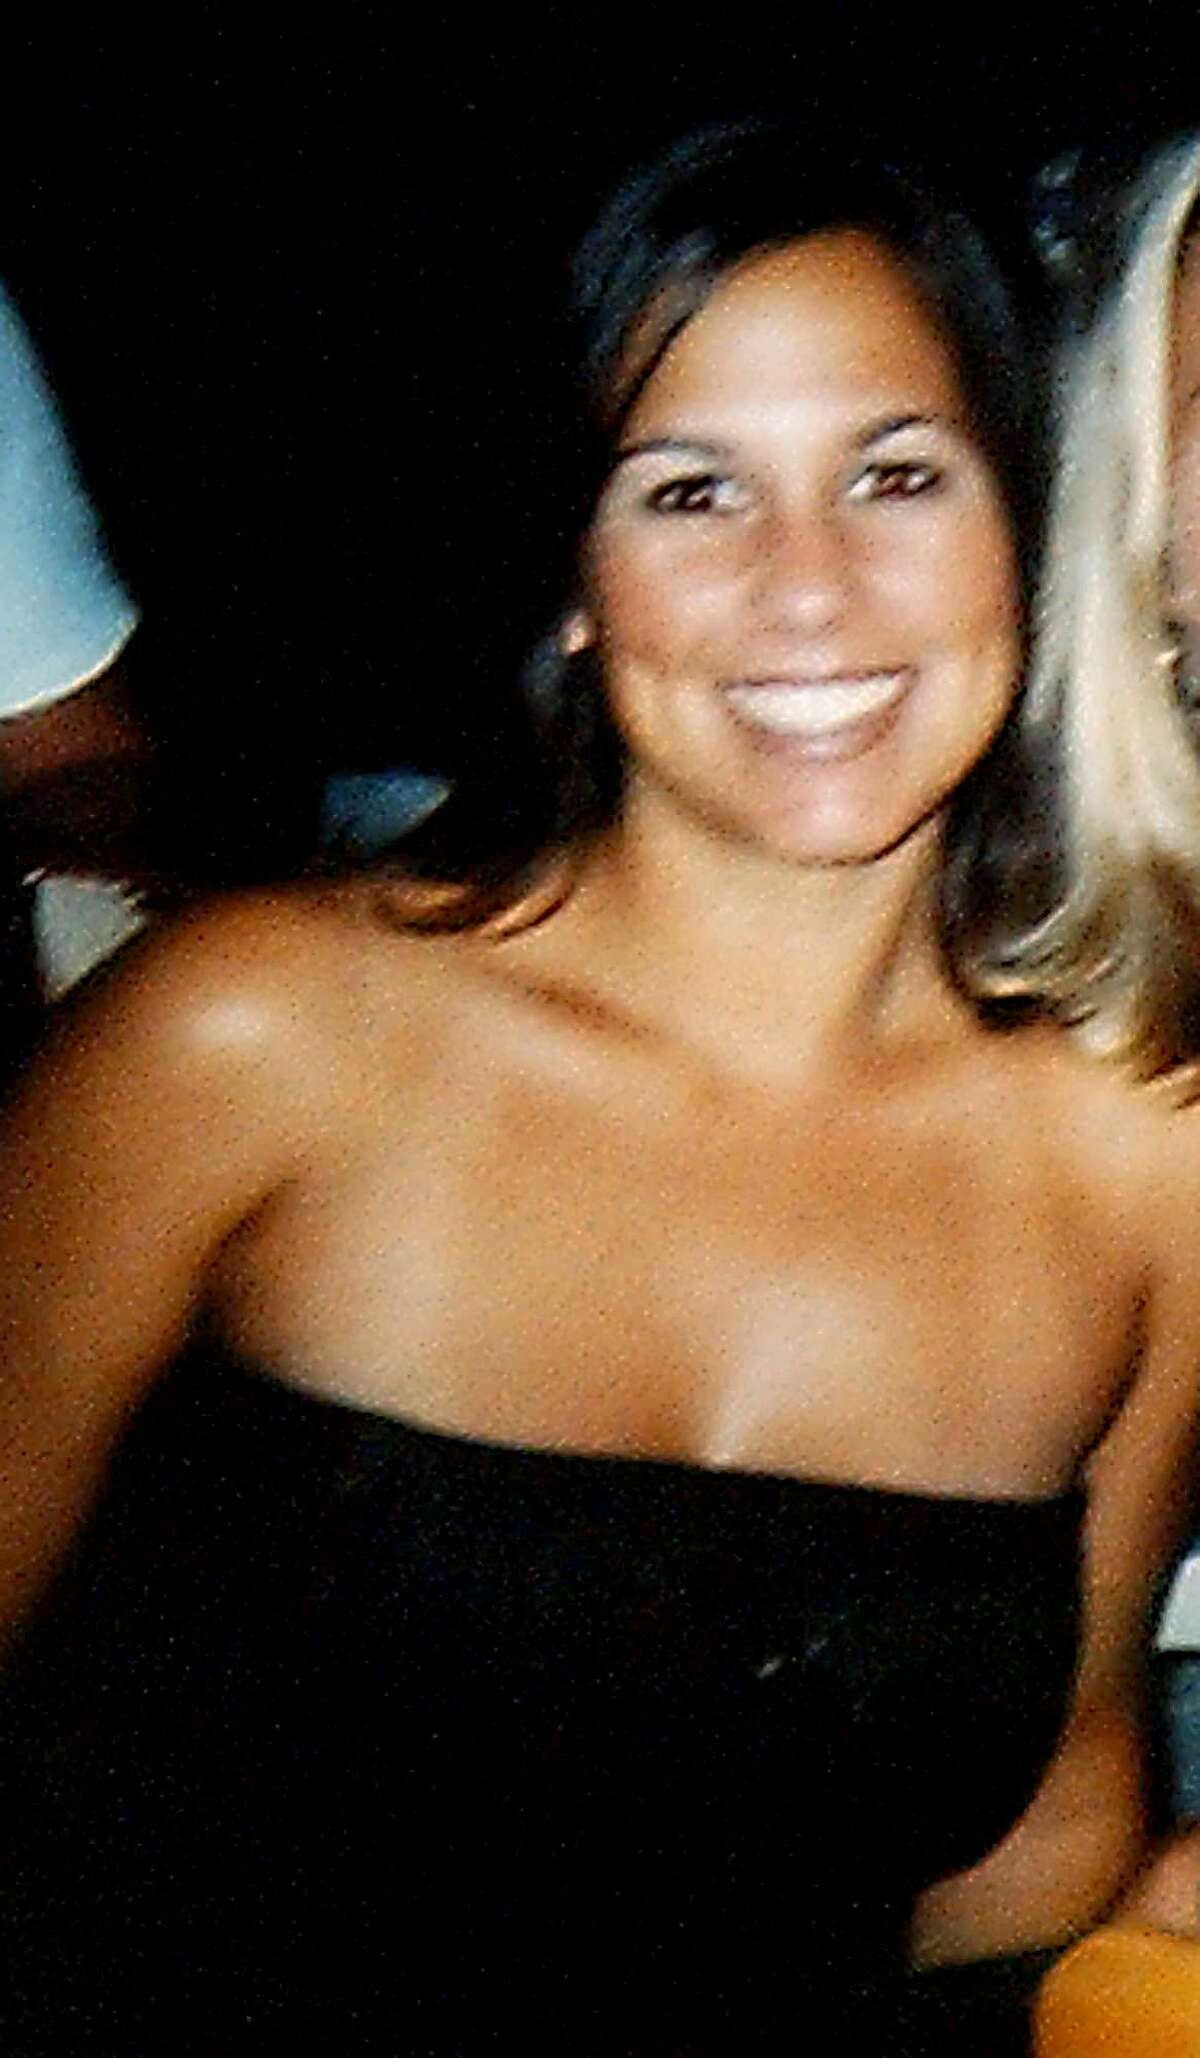 ** FKILE ** Laci Peterson, 27, of Modesto, Calif., is shown in this July 2002 family photo.A jury decided Monday Dec. 13, 2004 that Scott Peterson should be executed for murdering his pregnant wife, Laci, whose Christmas Eve disappearance two years ago was the opening act in a legal drama that captivated the nation. (AP Photo/Peterson Family) Ran on: 12-14-2004 Scott Peterson Ran on: 12-15-2004 A note at the burial site of Laci and Conner Peterson near Escalon (San Joaquin County) memorializes the slaying victims. Ran on: 12-15-2004 A note at the burial site of slaying victims Laci and Conner Peterson near Escalon (San Joaquin County) mentions the verdict. Ran on: 03-17-2005 Lee Peterson (left) and Jackie Peterson, parents of Scott Peterson, leave the courthouse where their son was sentenced to death. Ran on: 03-17-2005 Lee Peterson (left) and Jackie Peterson, parents of Scott Peterson, leave the courthouse where their son was sentenced to death. Also Ran on: 06-24-2007 Laci Peterson ALSO Ran on: 11-02-2007 Scott Peterson Ran on: 11-02-2007 Scott Peterson Ran on: 11-02-2007